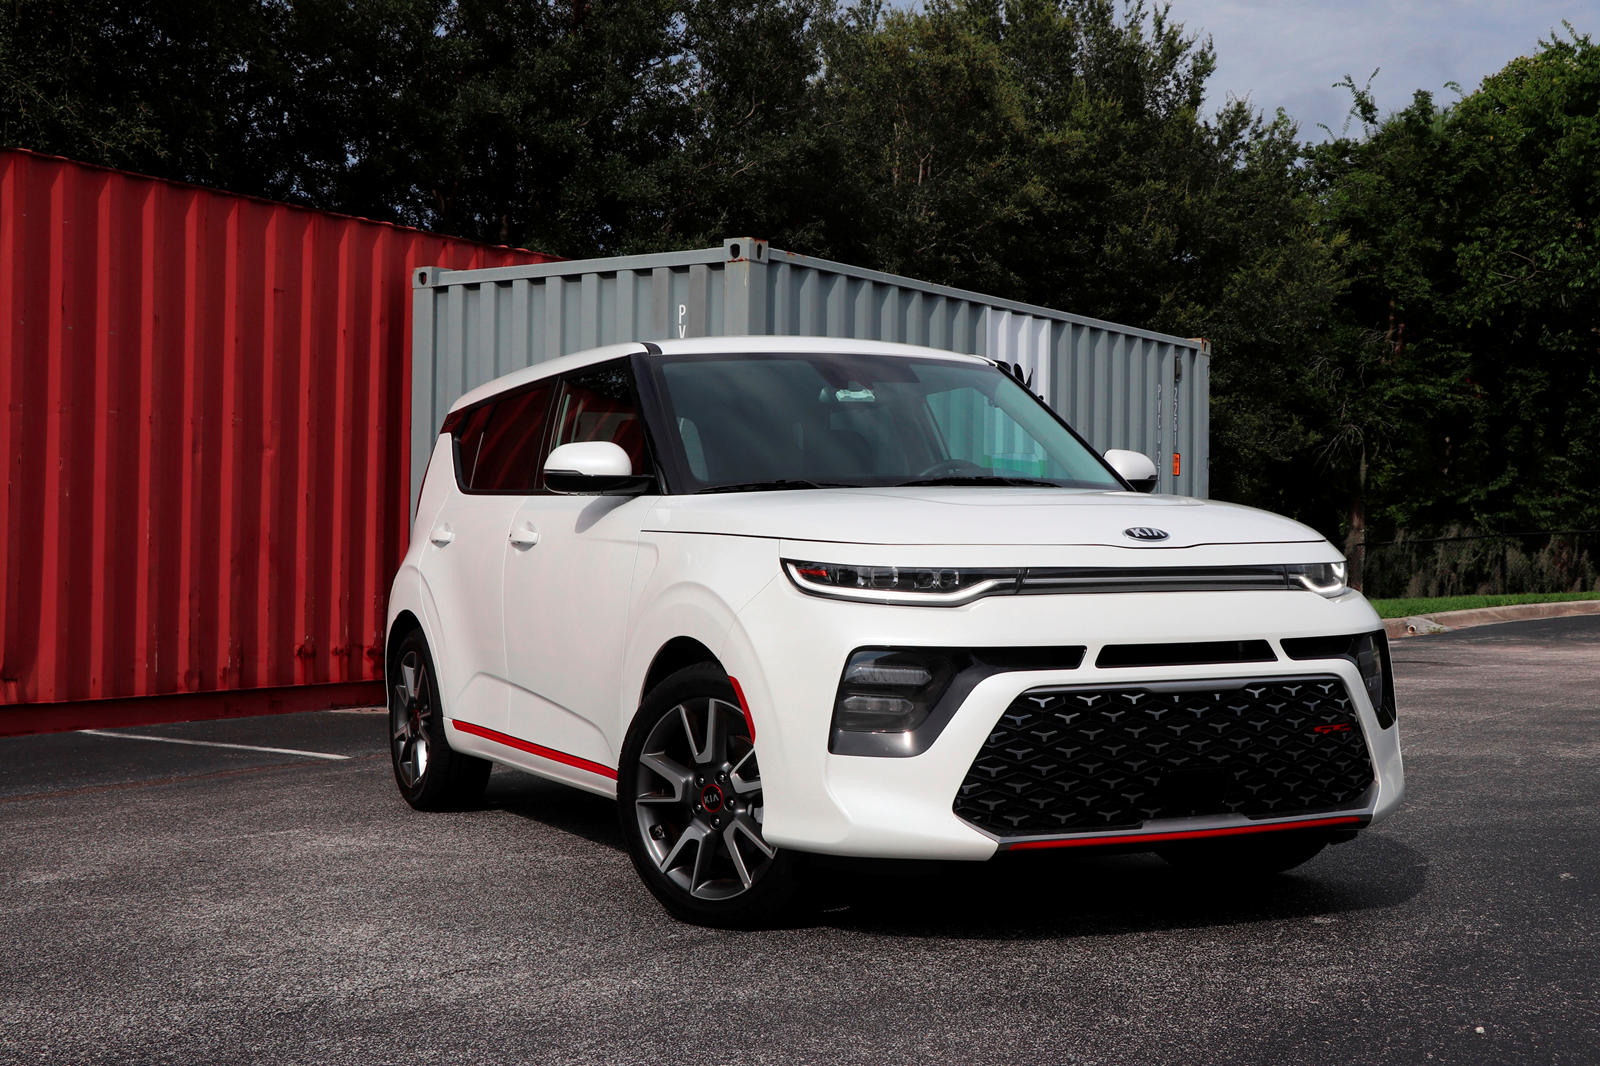 2021 kia soul review trims specs price new interior features exterior design and specifications carbuzz carbuzz